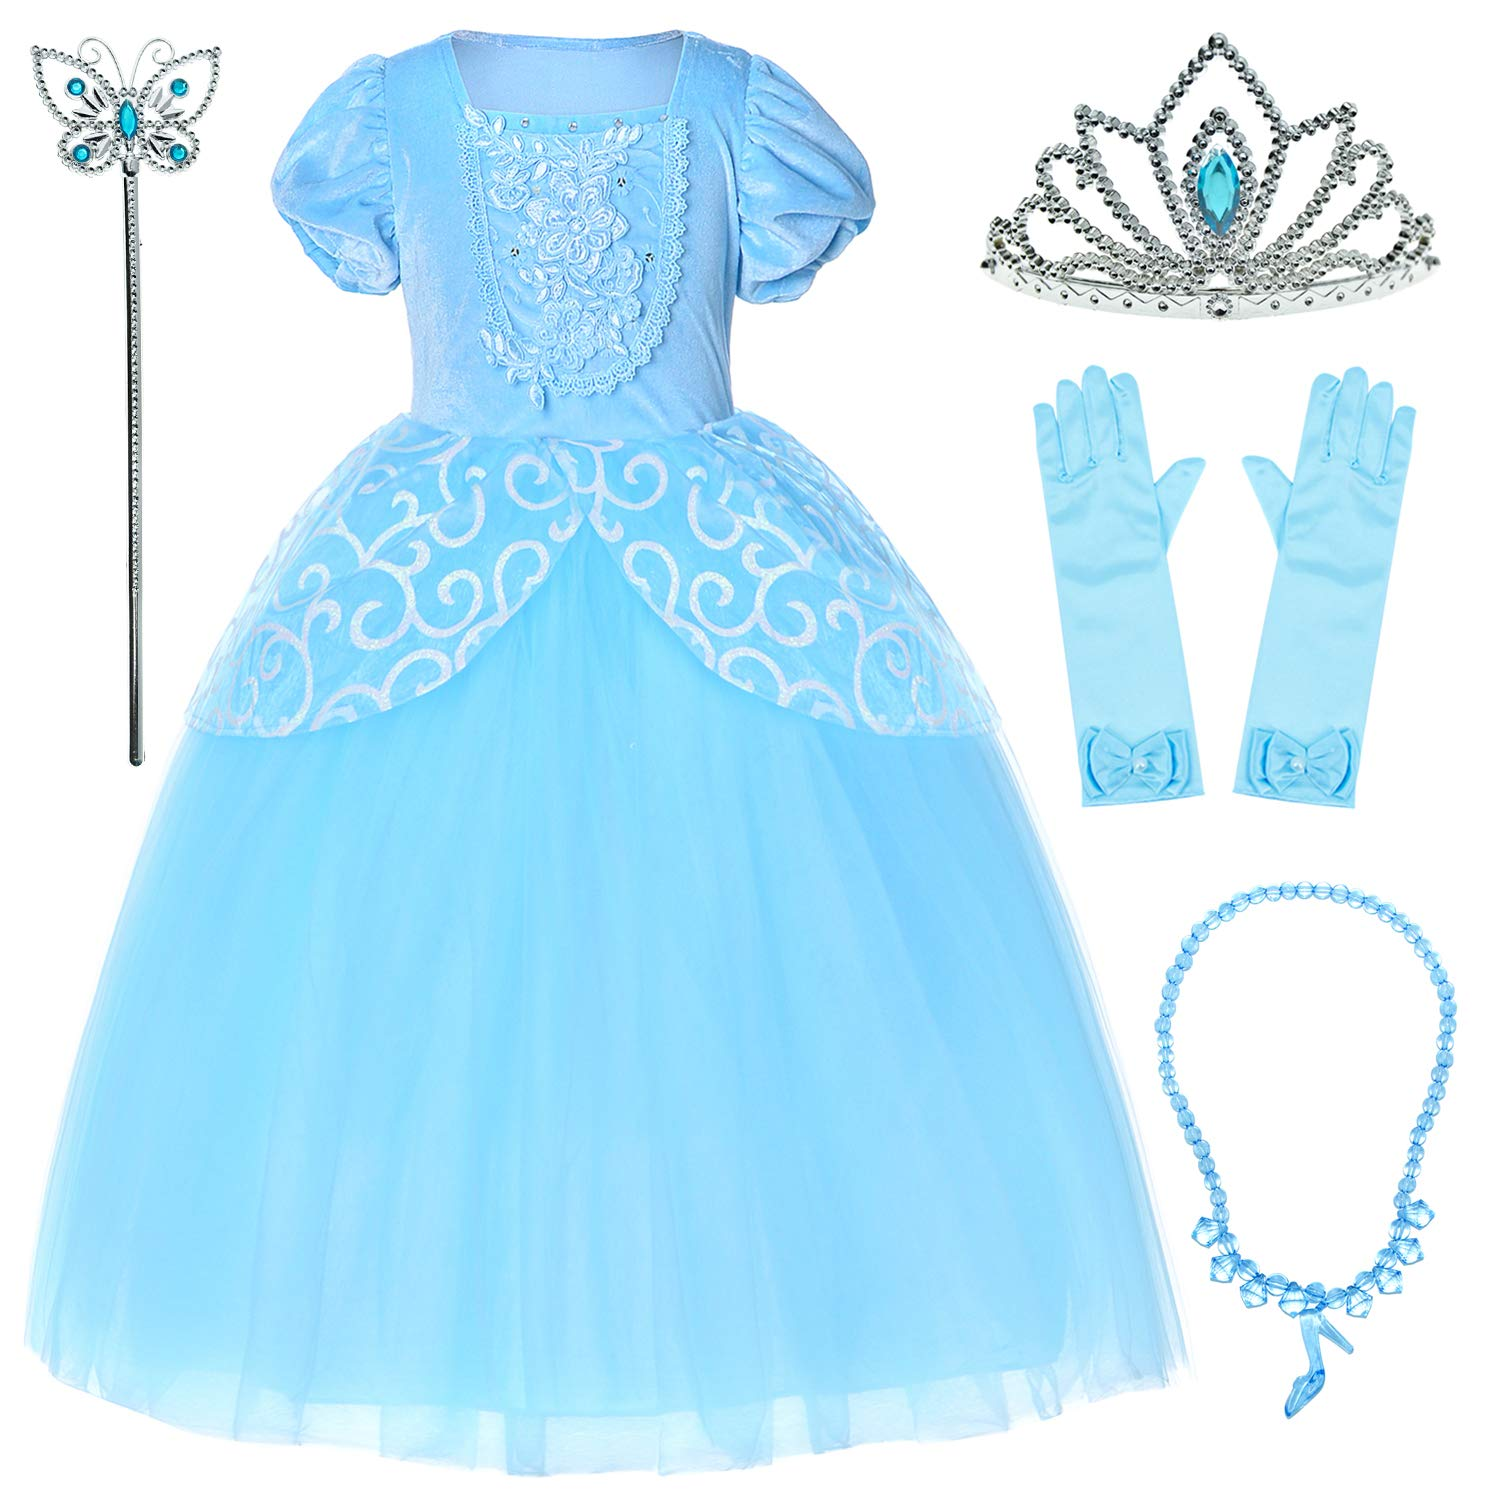 9-layers Tulle Skirt Princess Cinderella Costume Girls Dress Up With Accessories 5T 6T